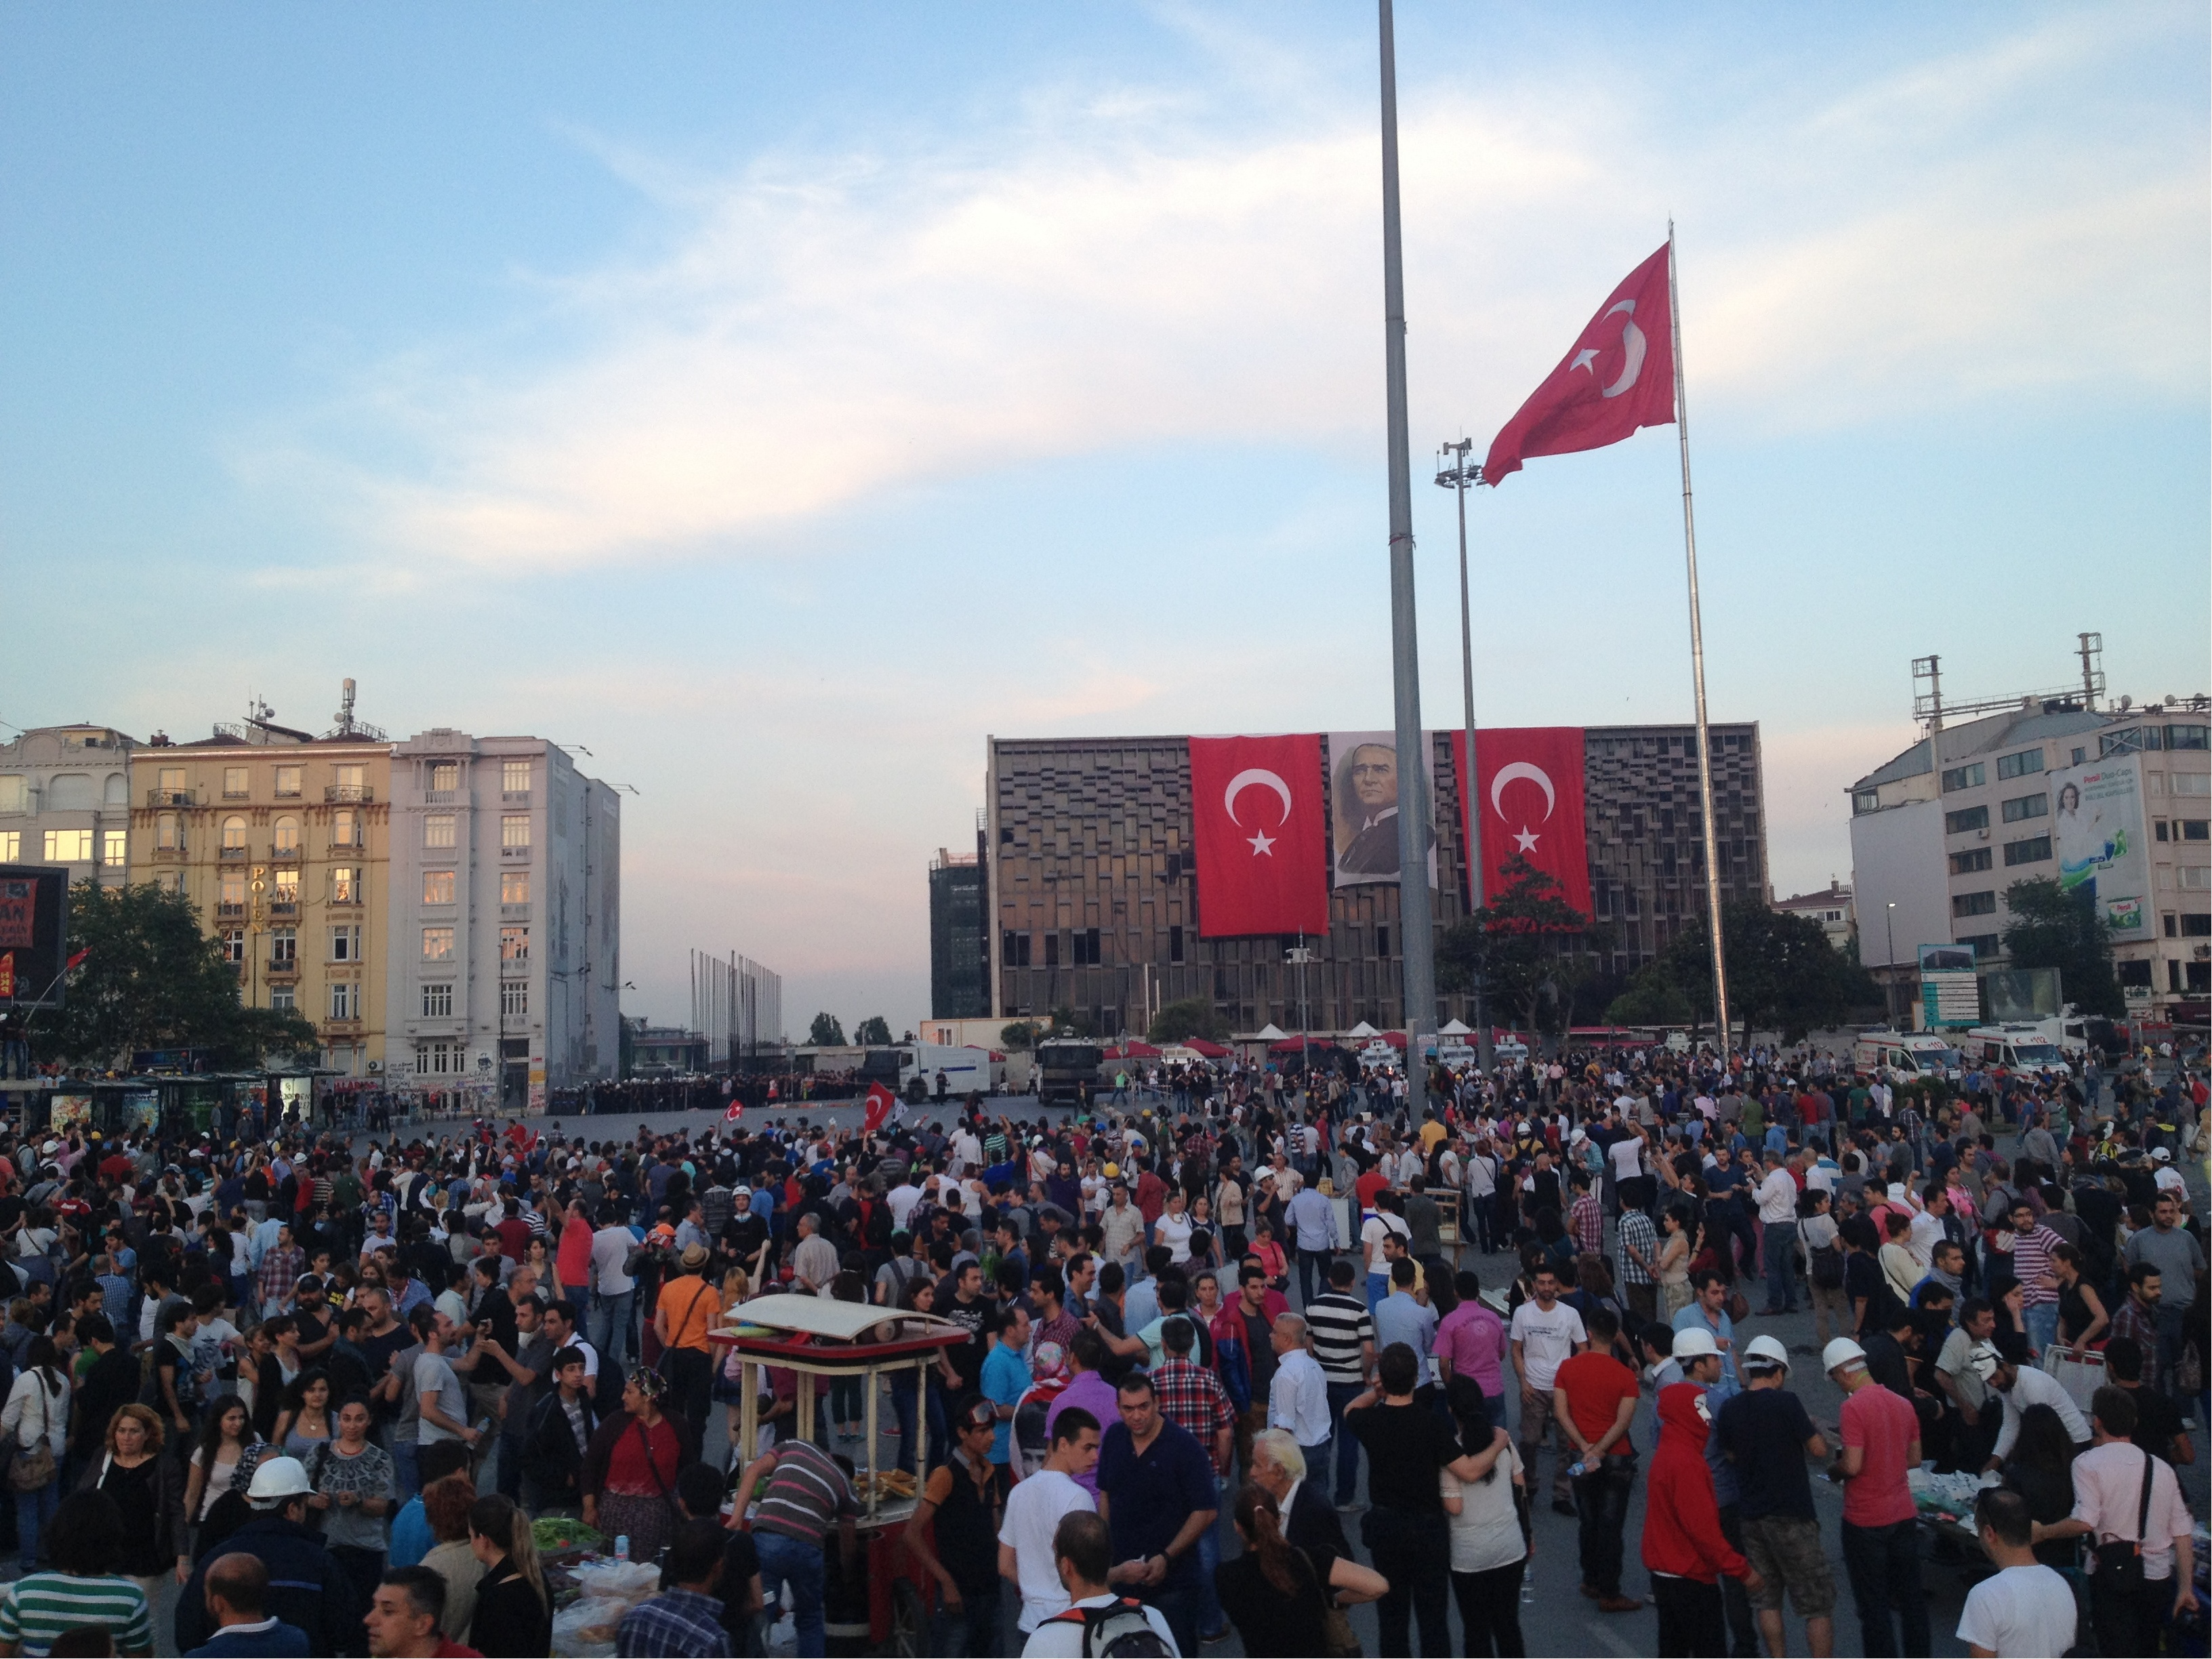 Taksim Square moments before the police attacked with tear gas canons and grenades.